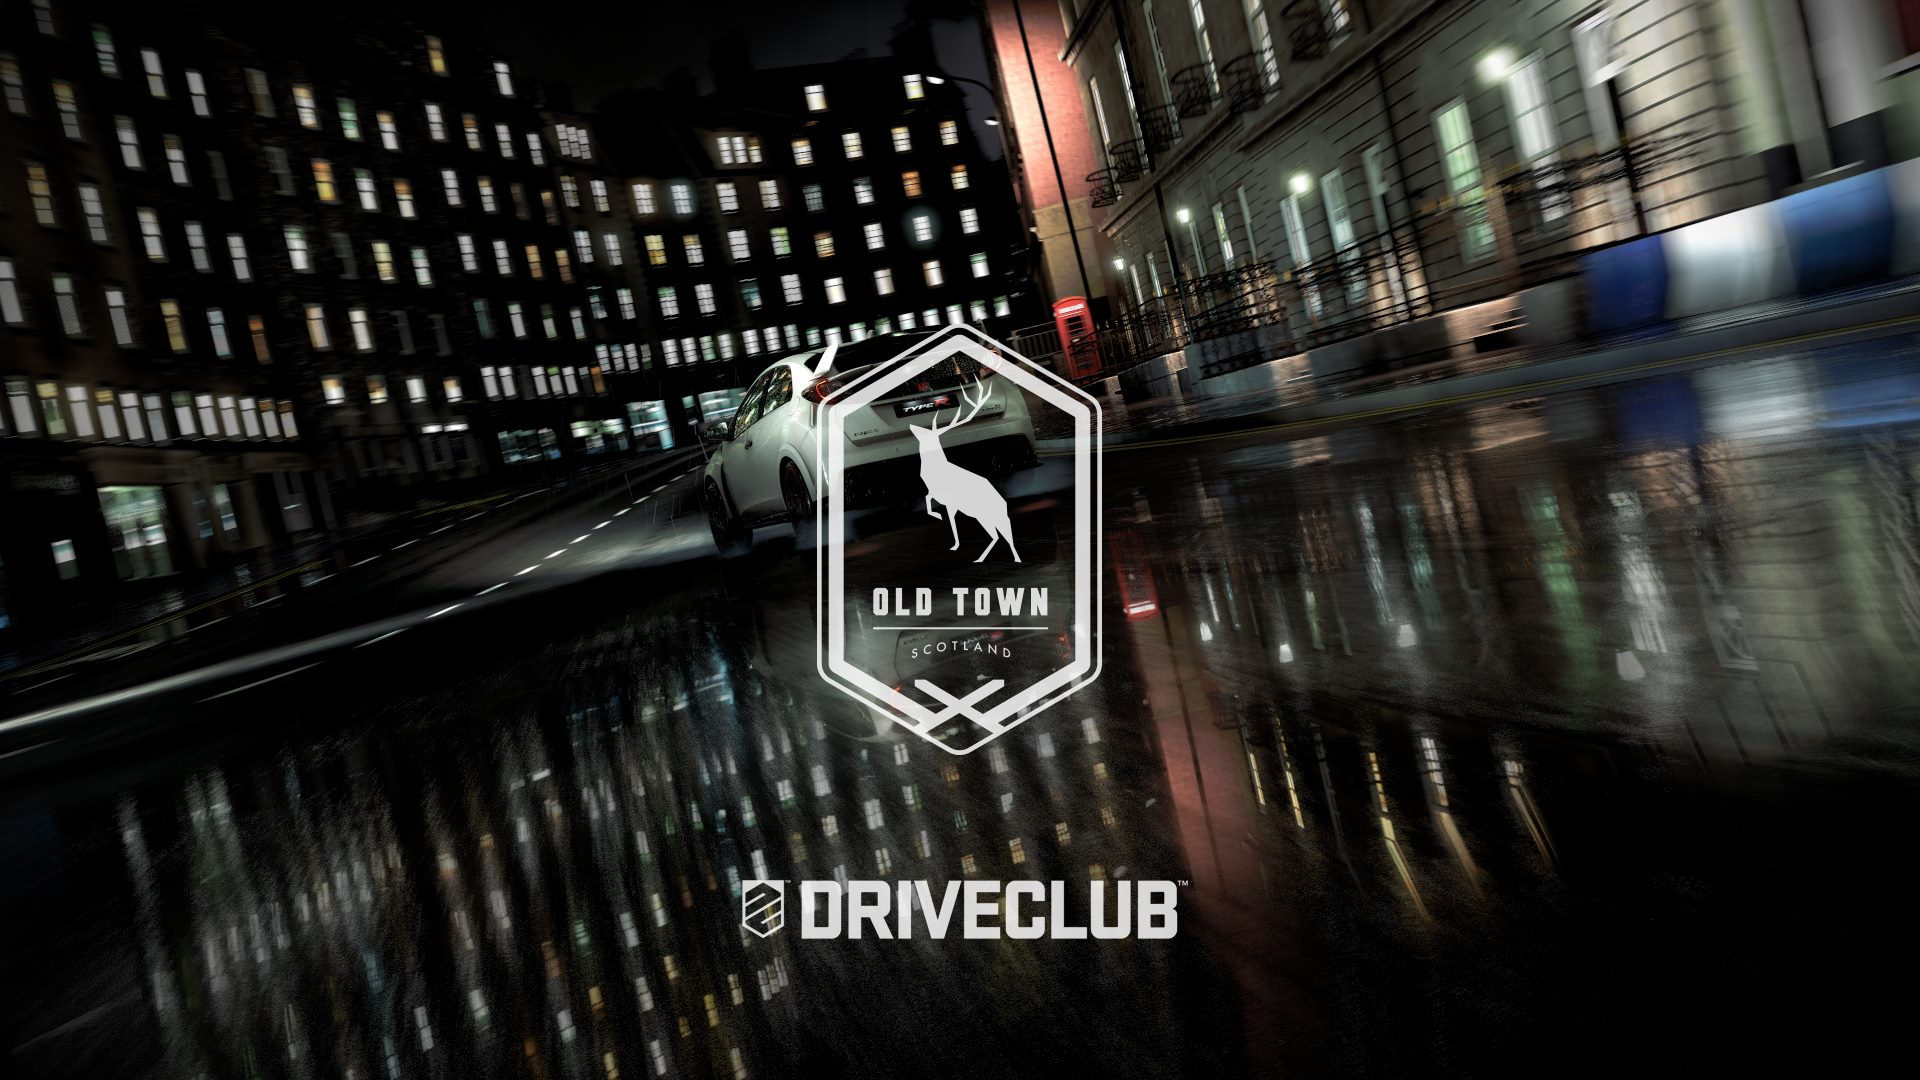 Driveclub Scottland Old Town